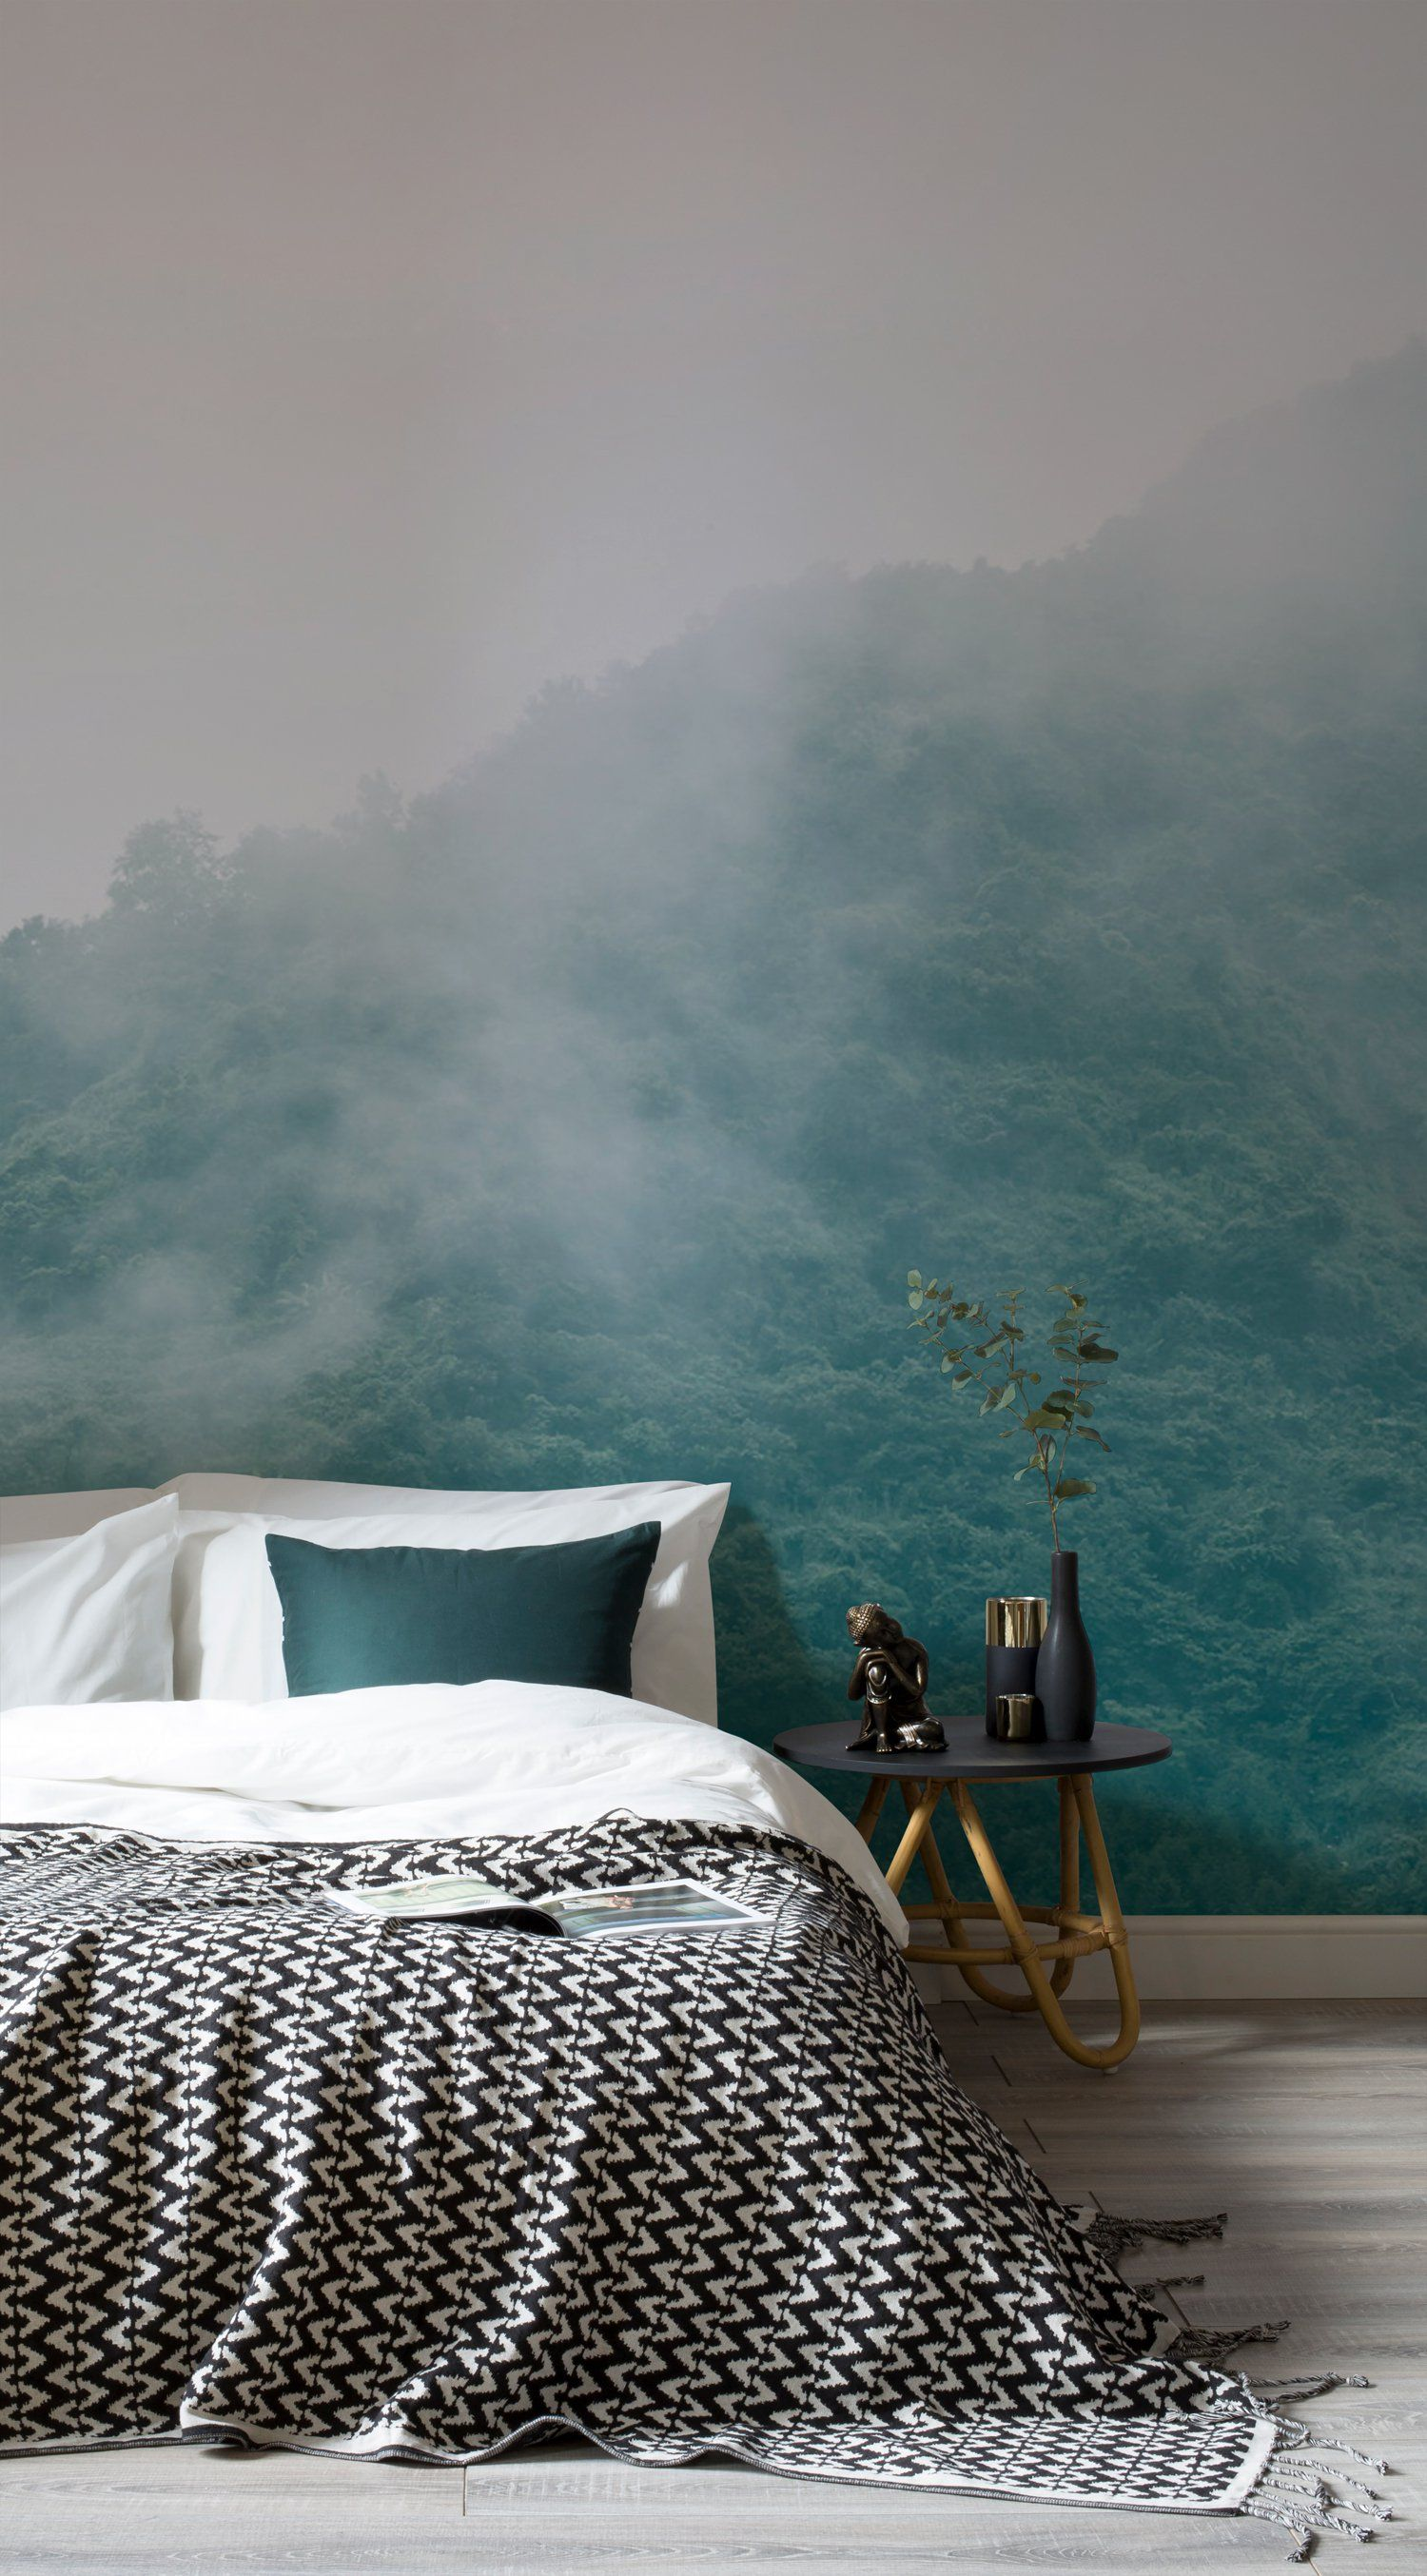 Wandgestaltung Wohnzimmer Natur 6 Wallpapers That Banish Stress Interior Design